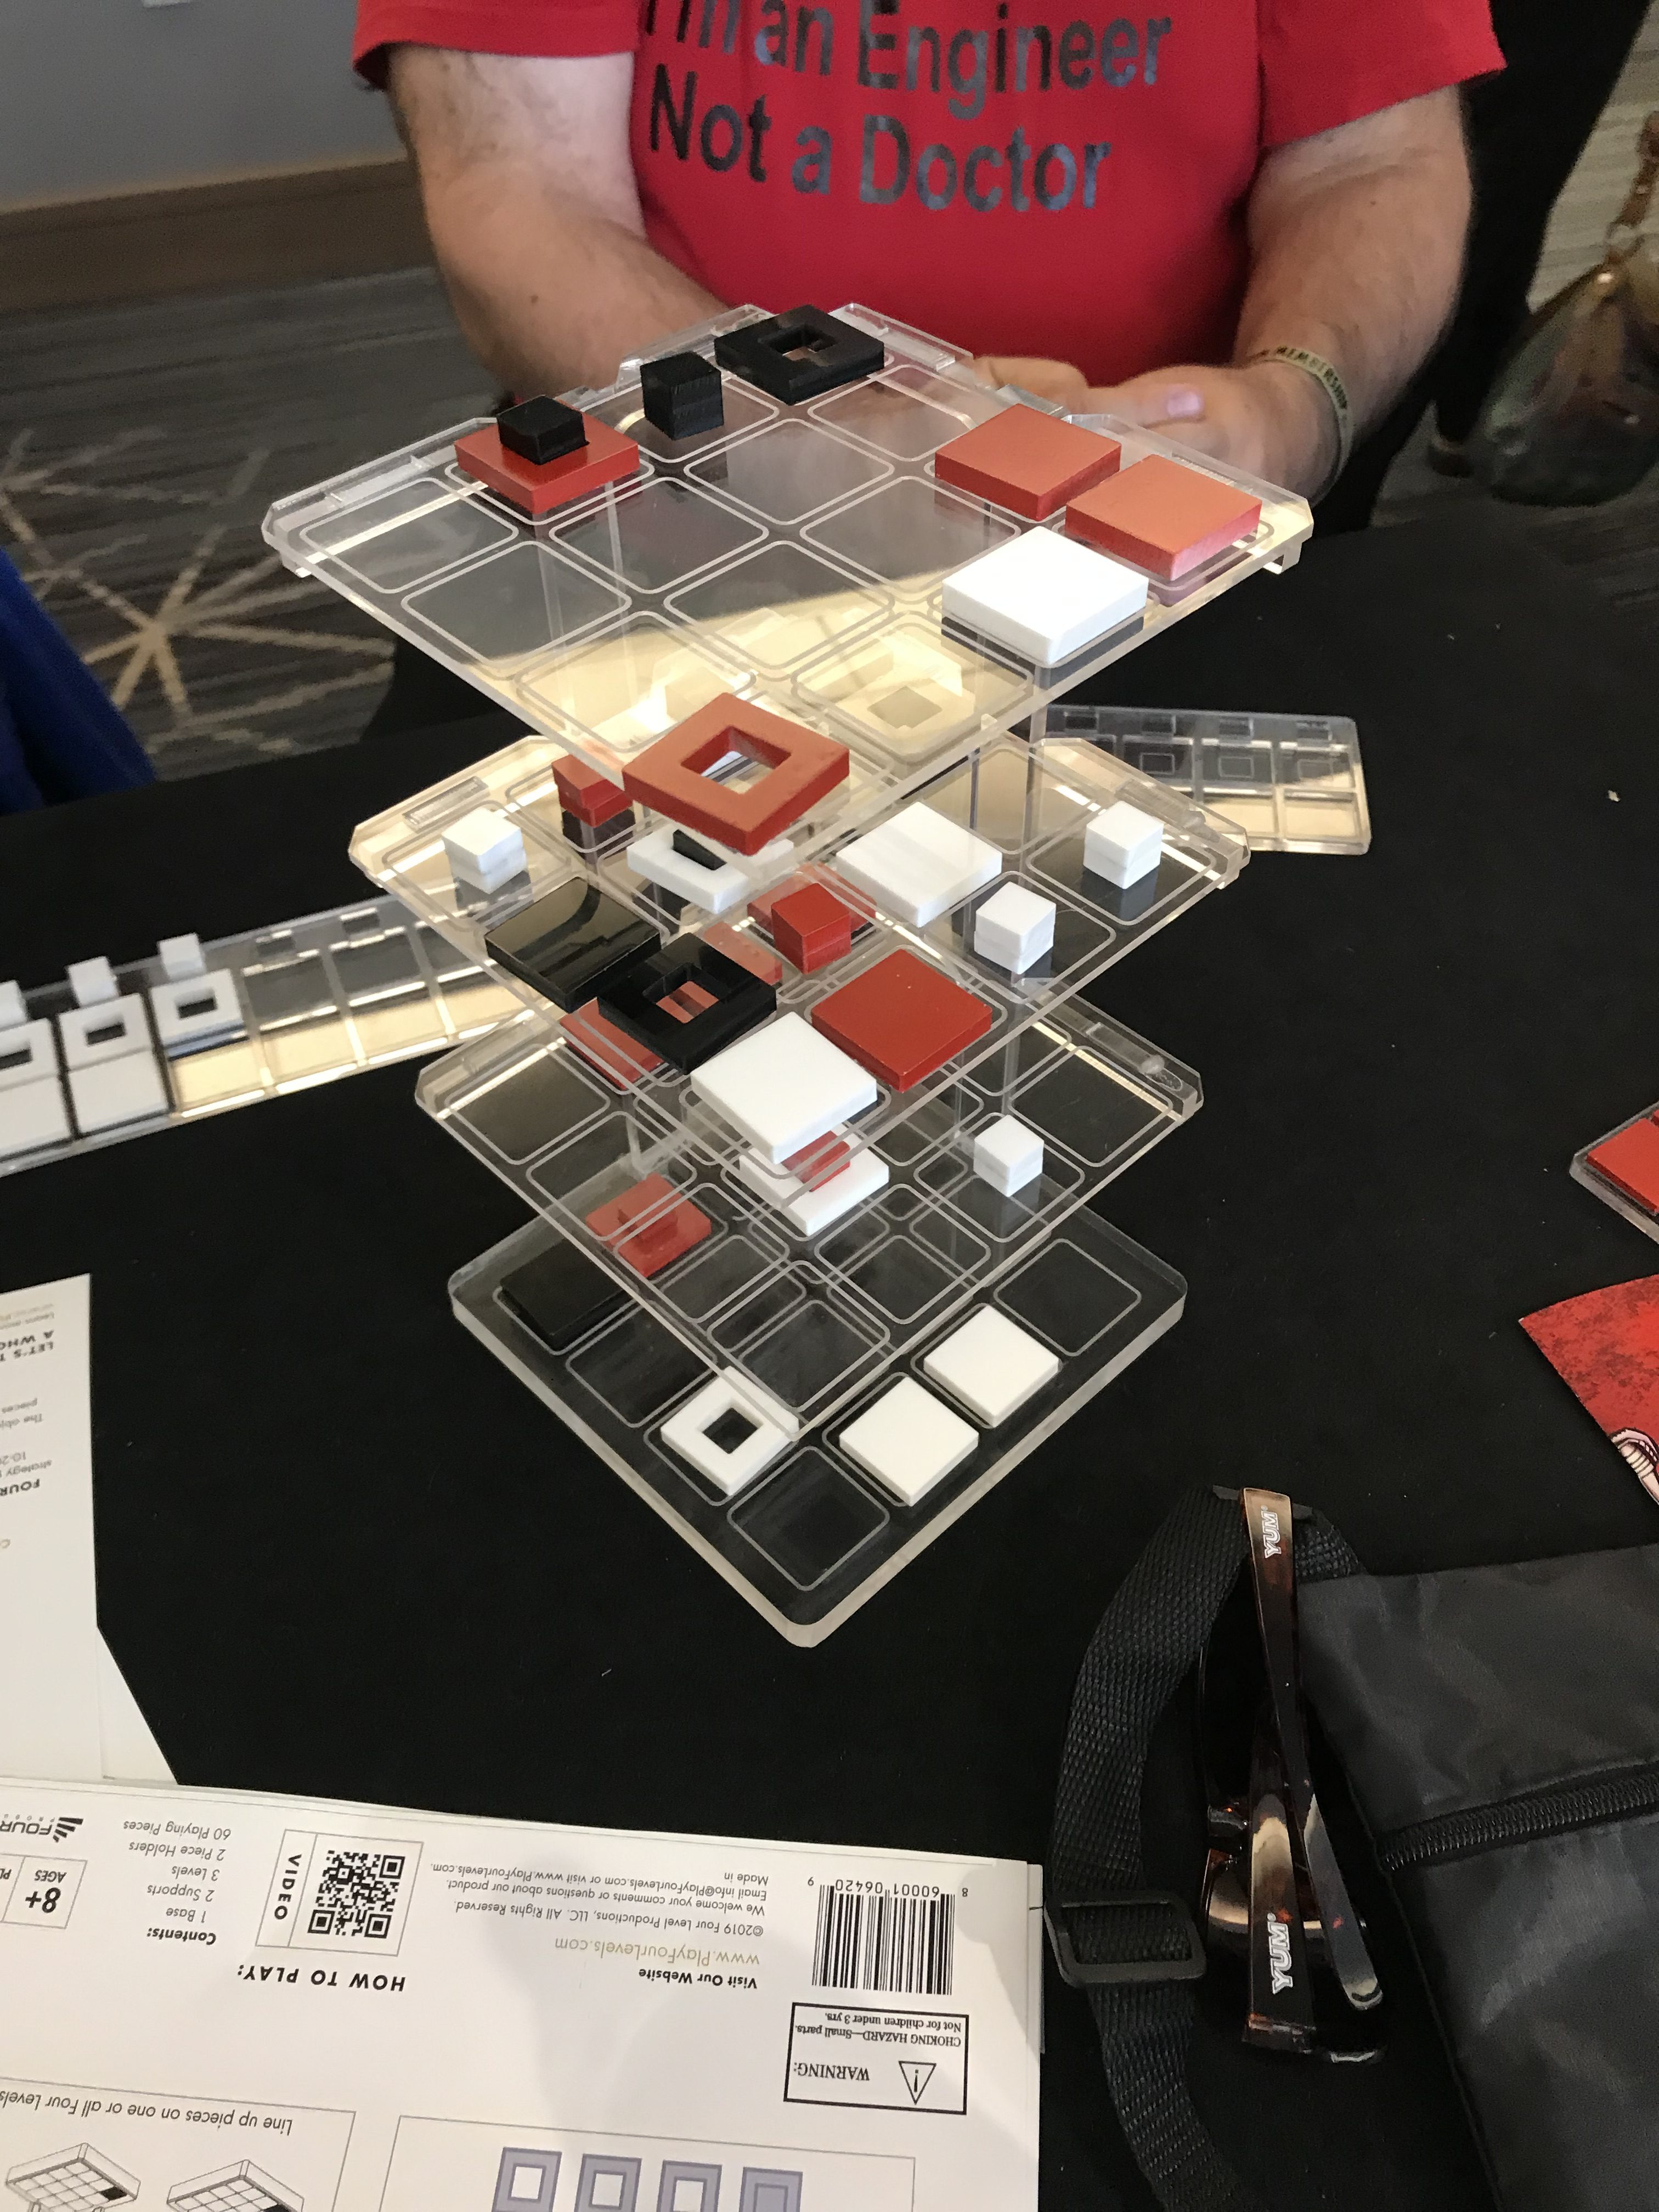 Playtesting Four Levels 3 player